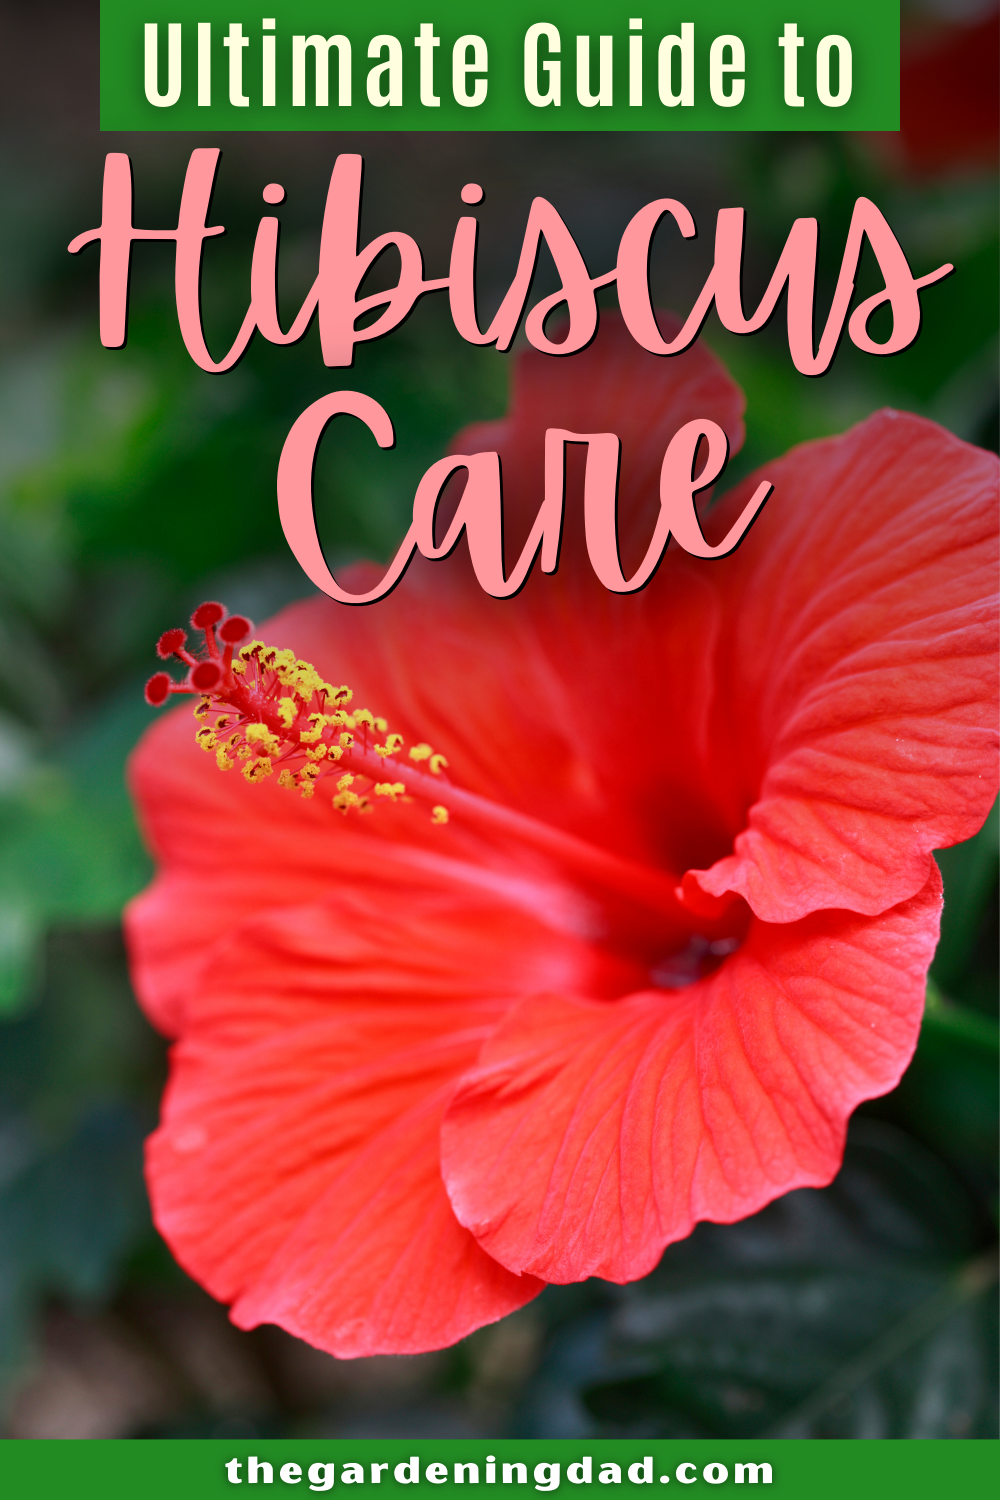 Ultimate Guide To Hibiscus Care Indoors The Gardening Dad In 2020 Hibiscus Plant Hibiscus Flowers Perennials